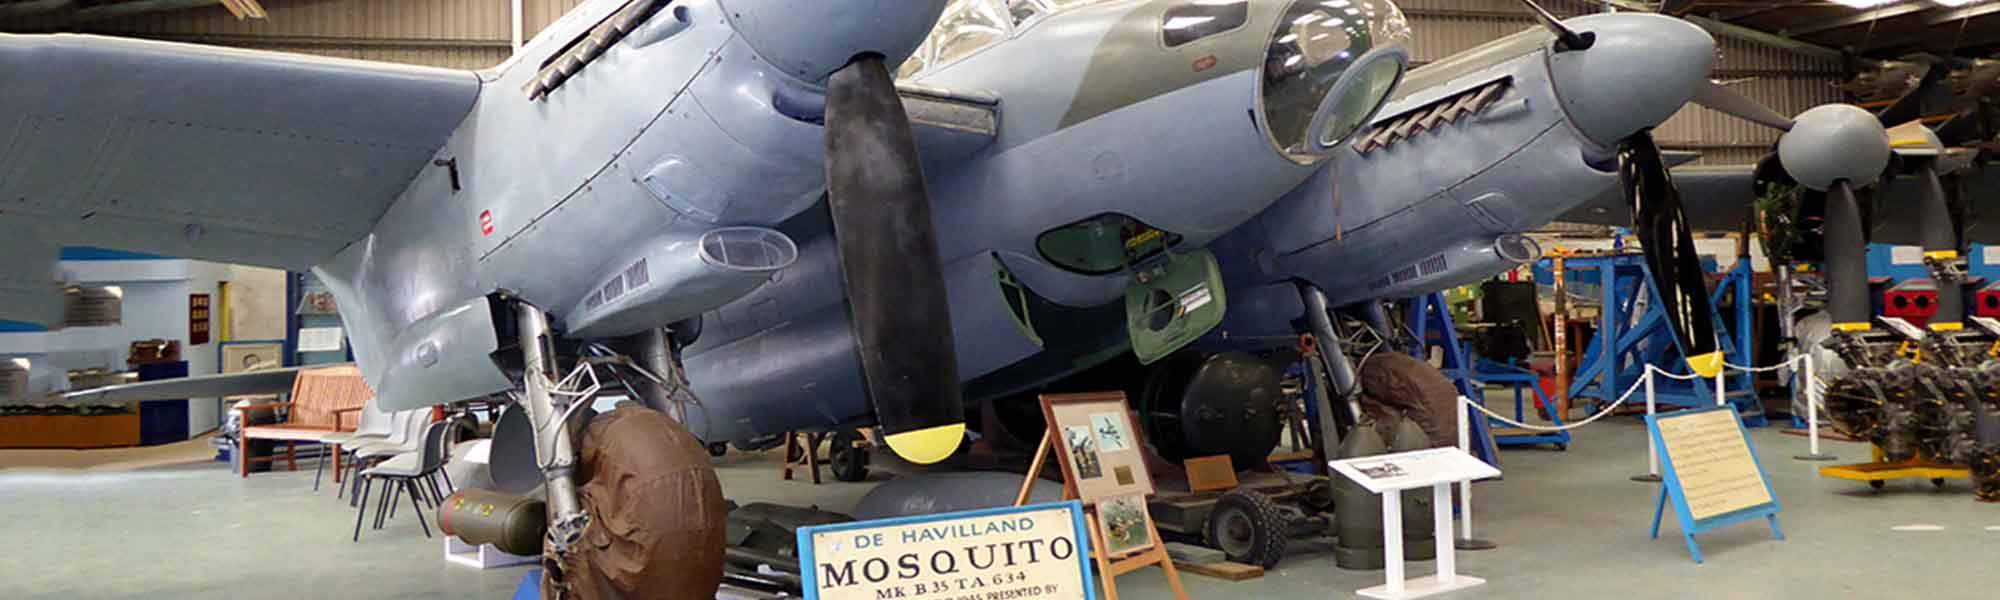 Little Bird de Havilland Aircraft Museum - Get On Board & Experience A Pilots Eye View, Up to 50% off